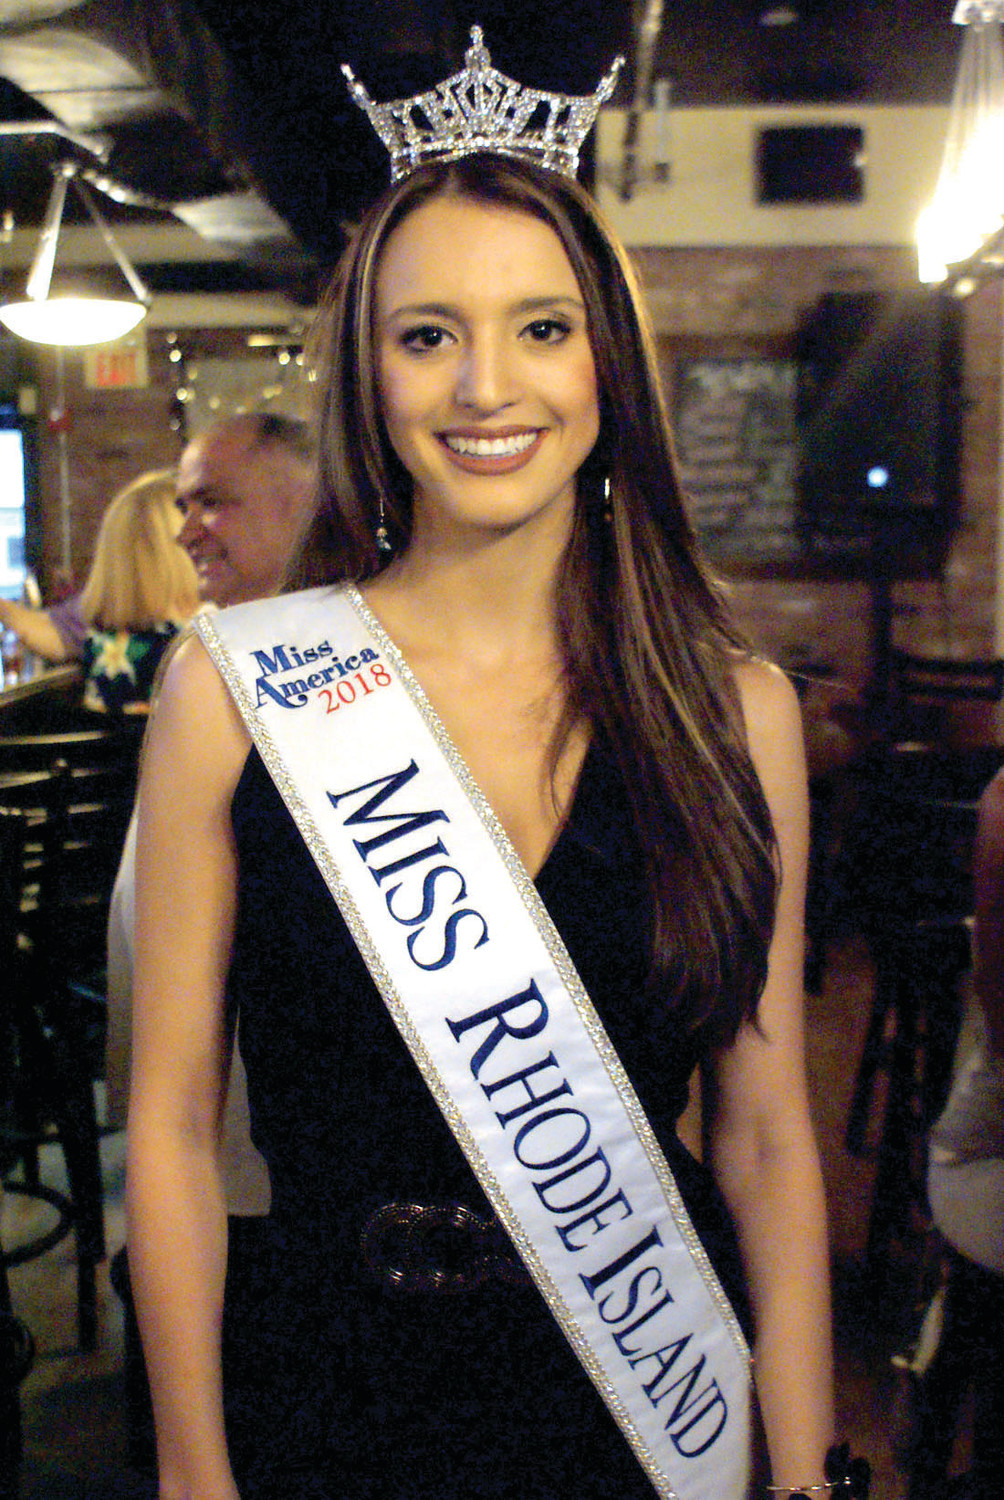 RI BEAUTY: On June 24, family and friends gathered at the Pub on Park to raise funds for Miss Rhode Island Allie Coppa of Cranston for her to continue on to the Miss America Pageant.